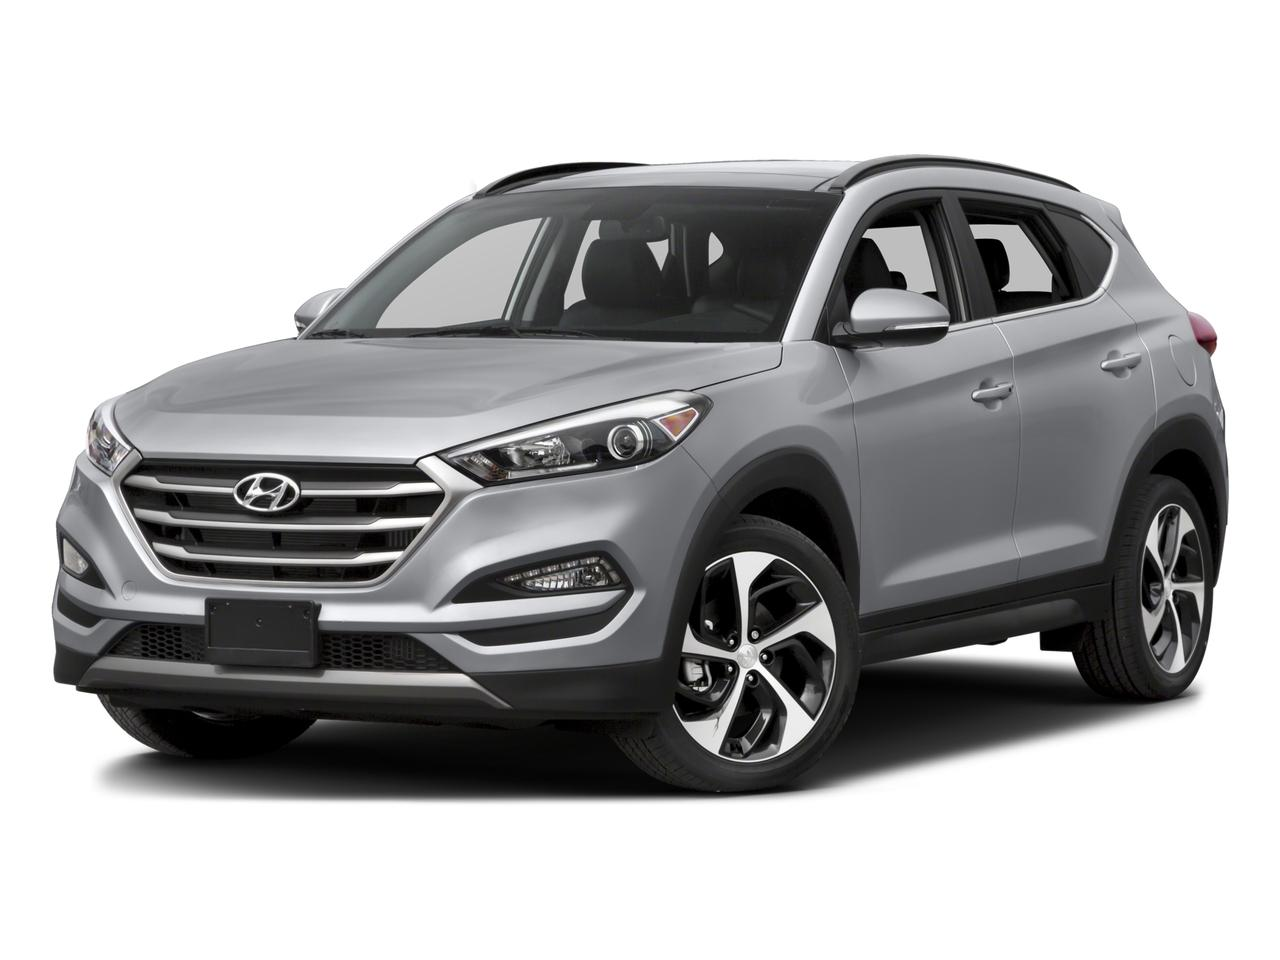 2016 Hyundai Tucson Vehicle Photo in Oklahoma City, OK 73162